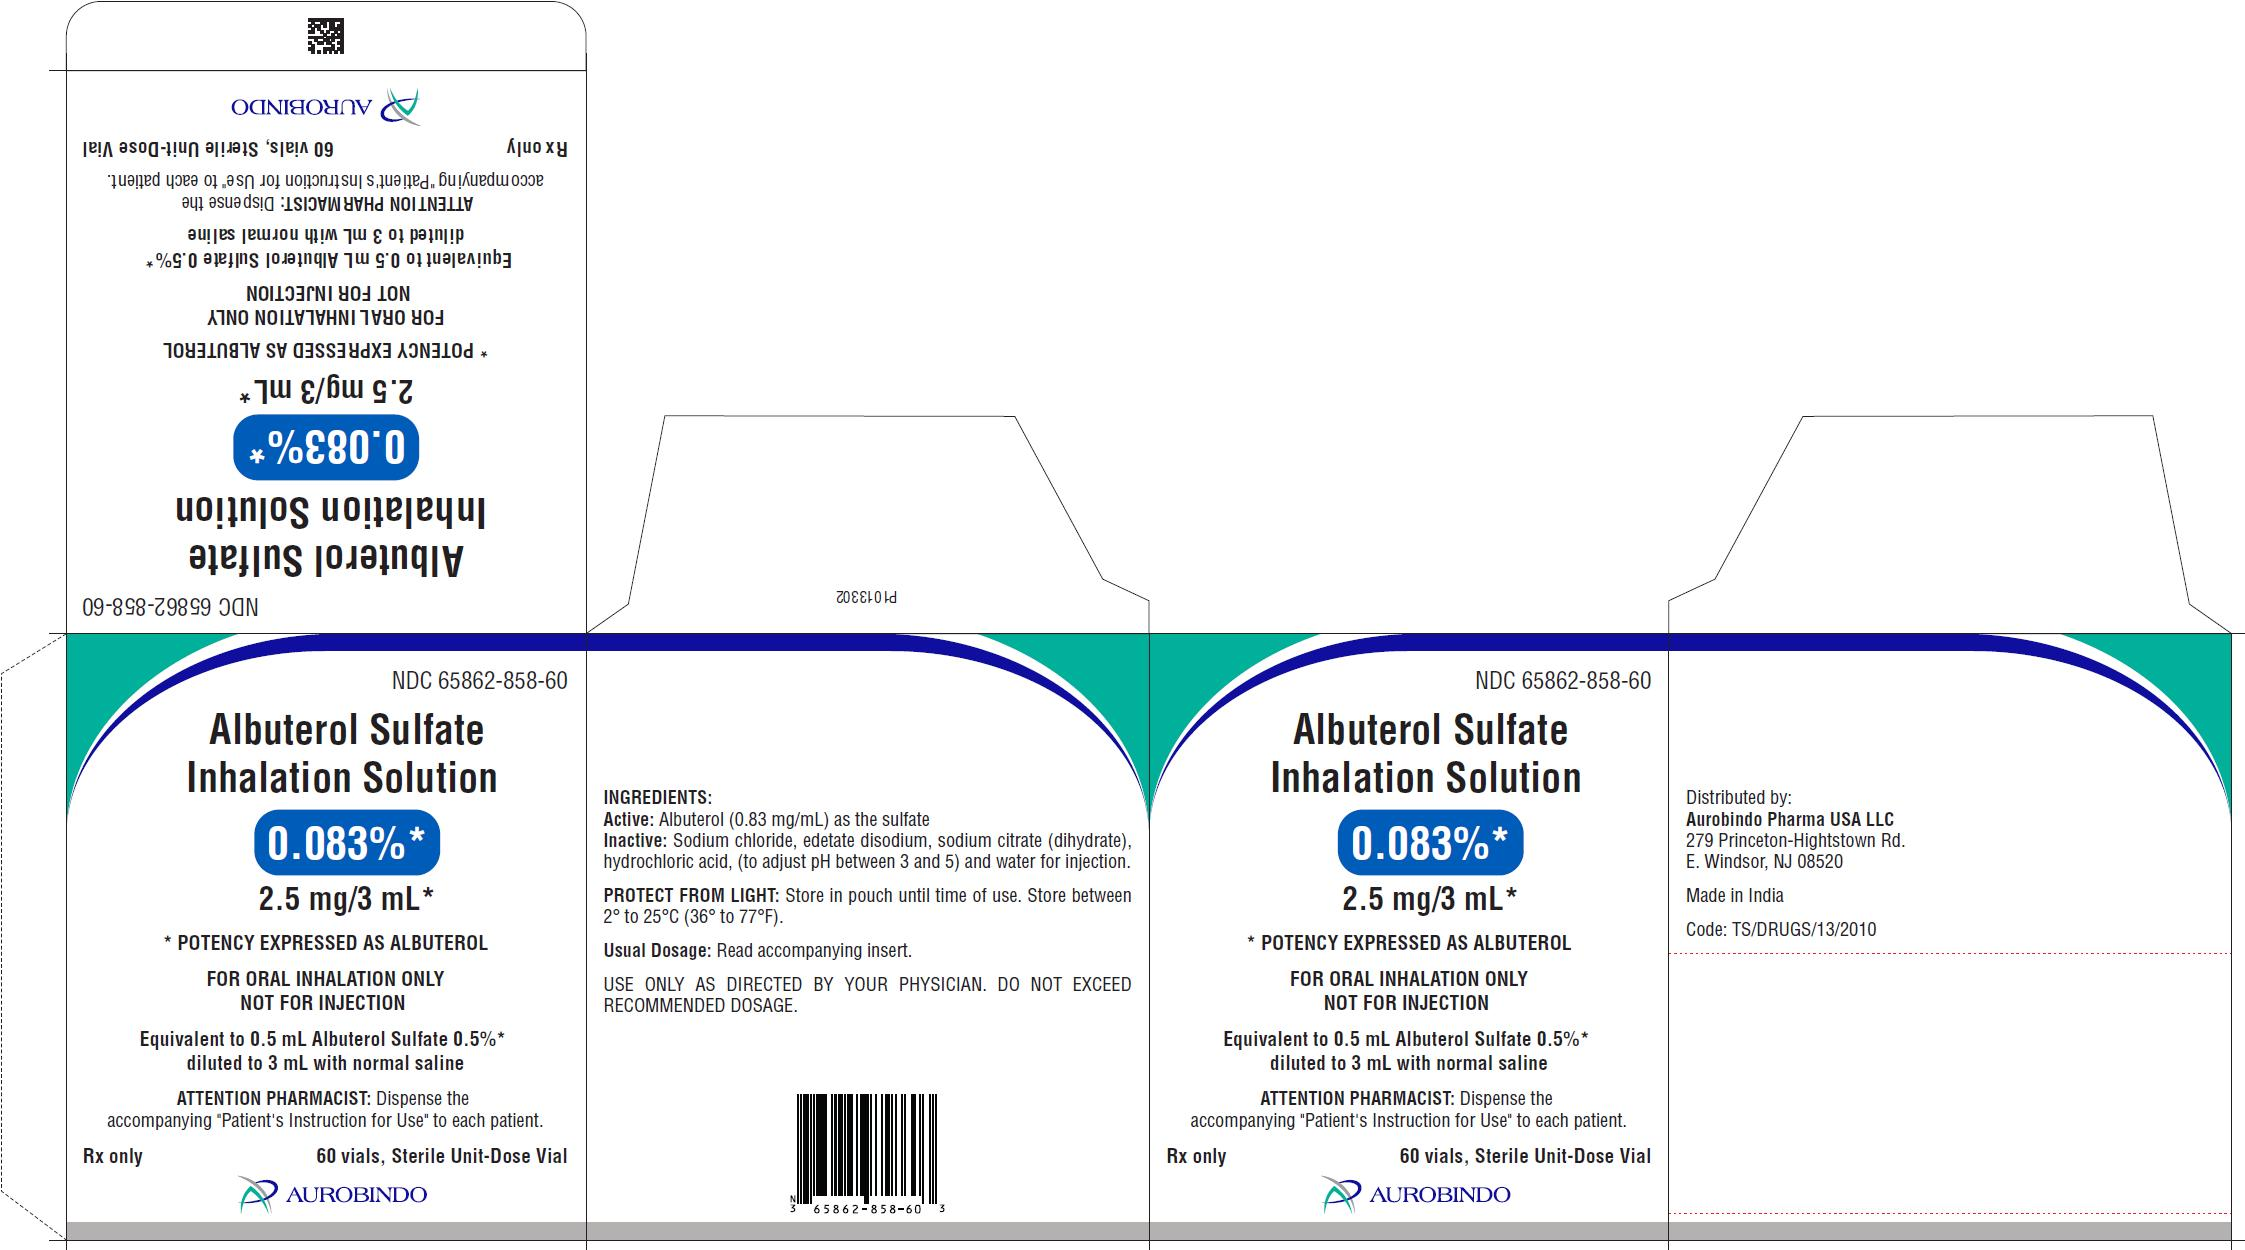 PACKAGE LABEL-PRINCIPAL DISPLAY PANEL - 0.083% (2.5 mg/3 mL) - Container-Carton (60 Vials)